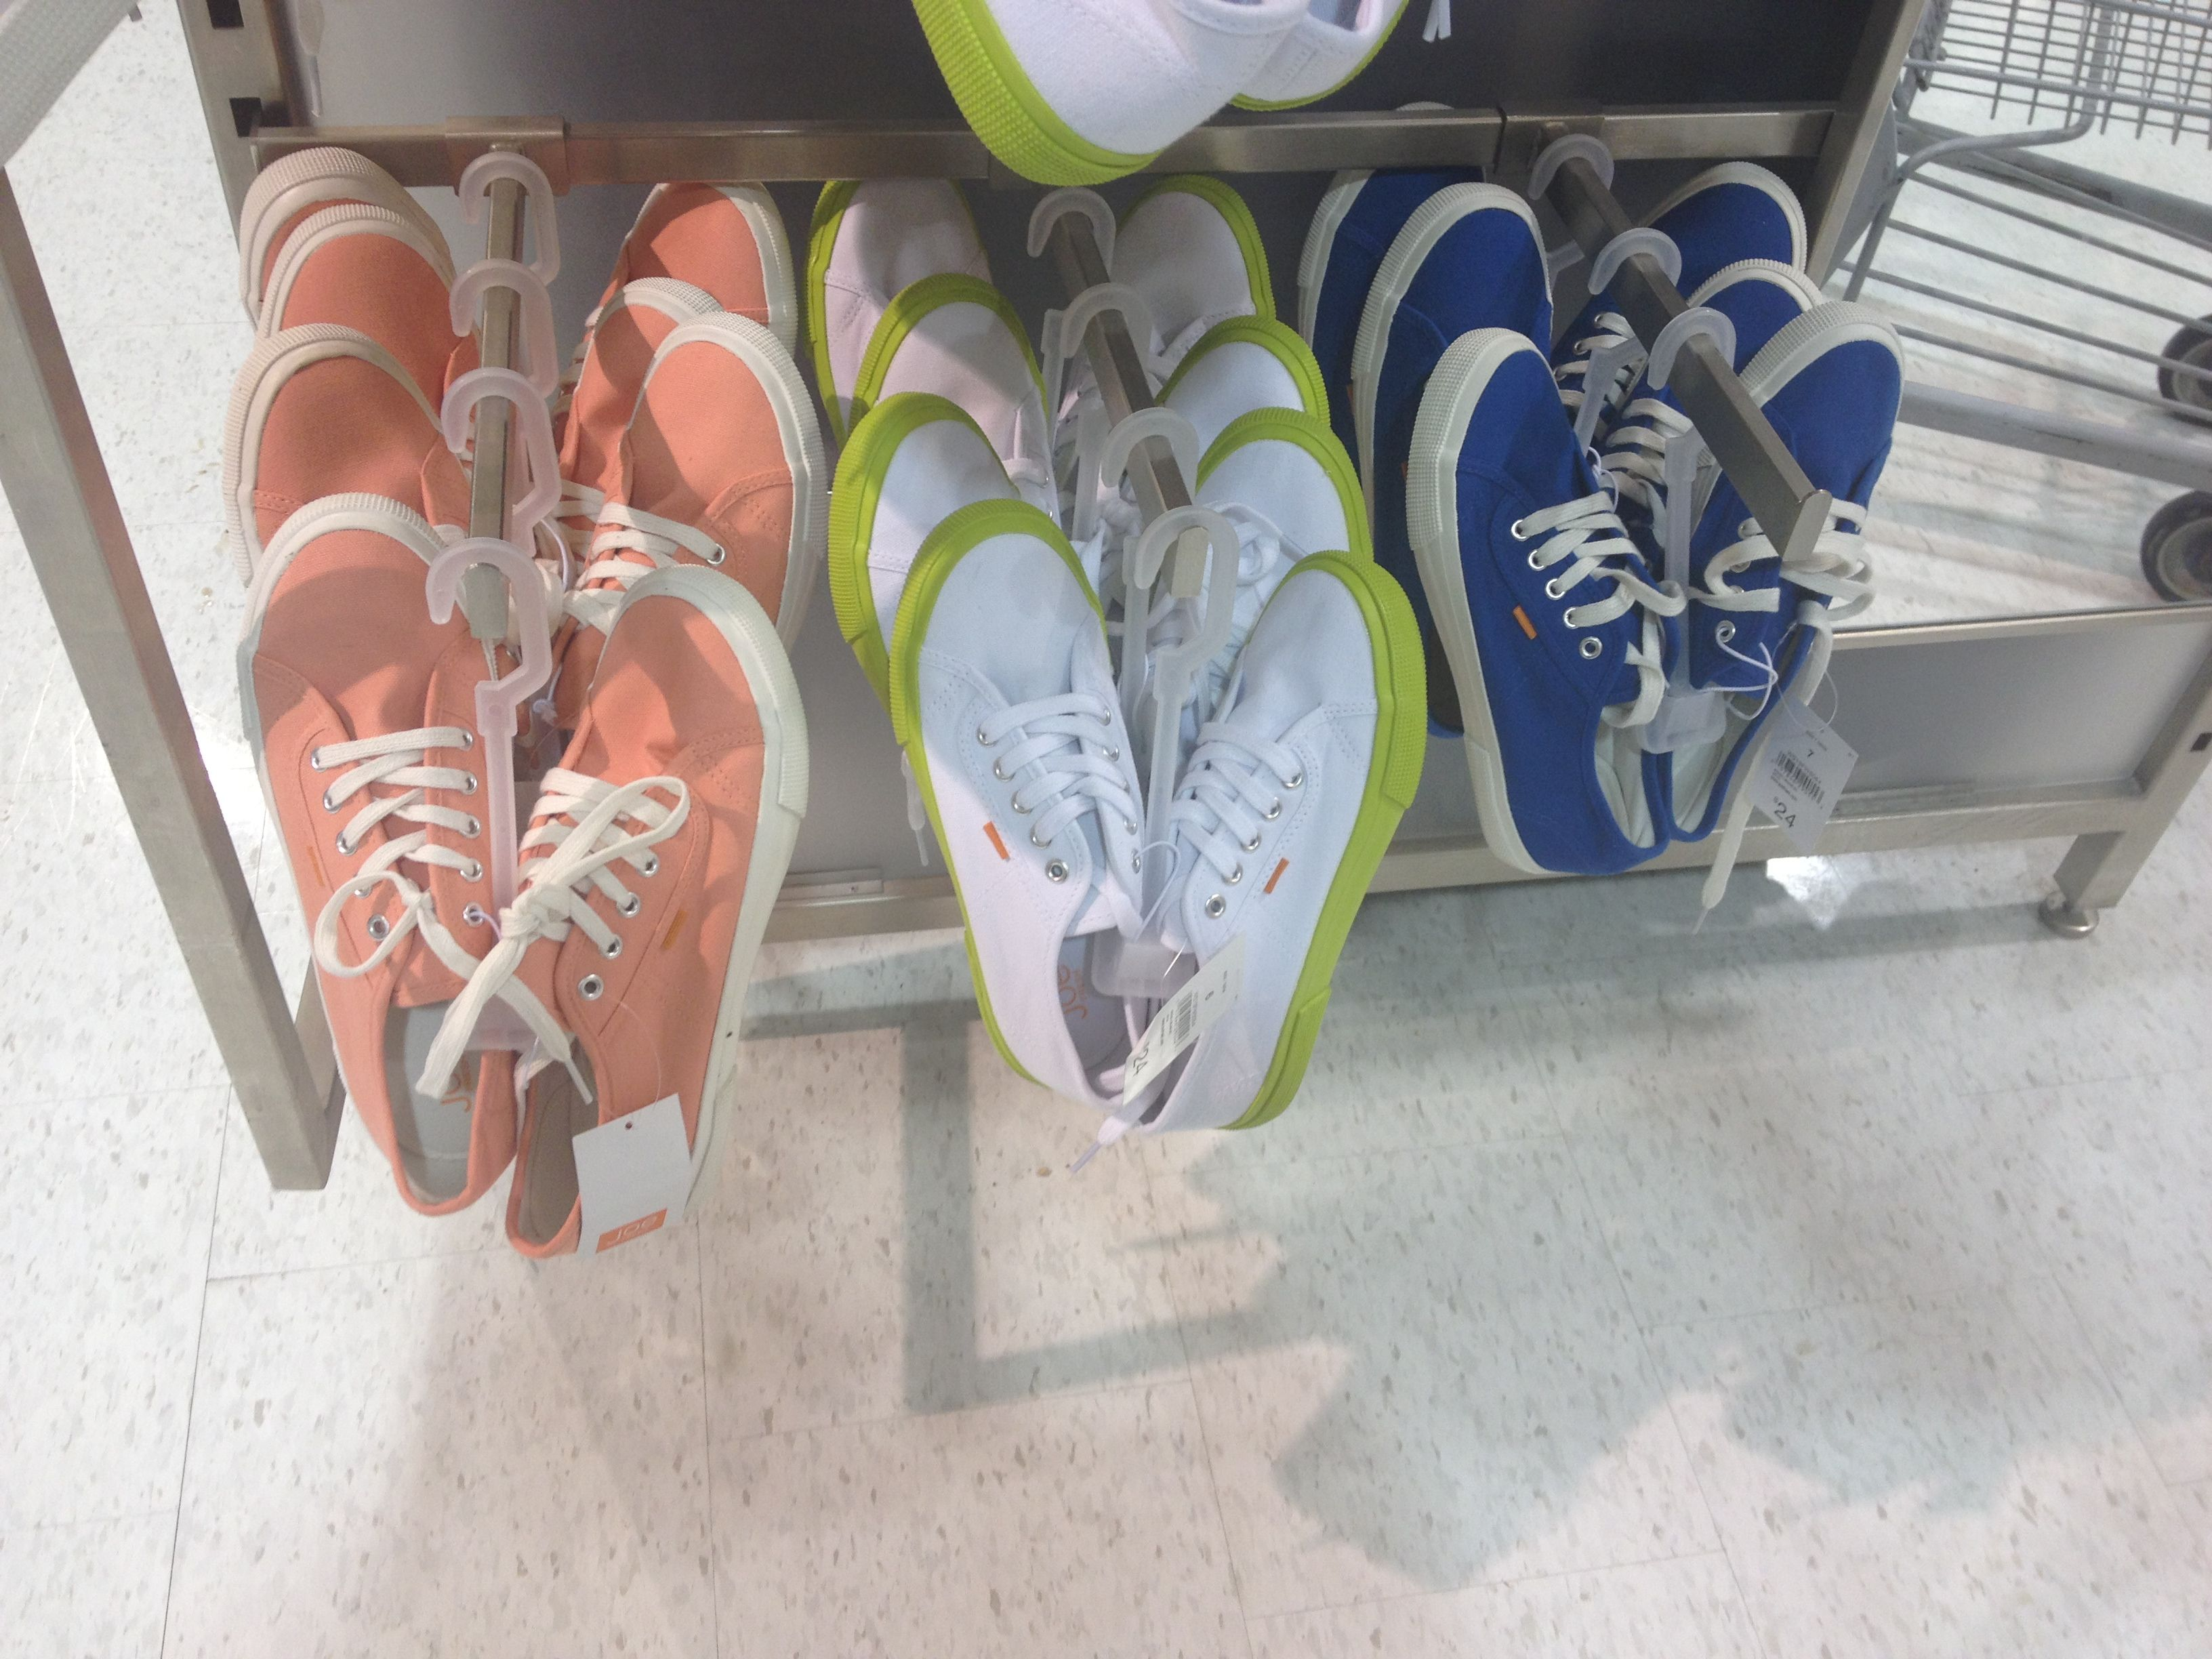 Love these sneakers at joe fresh! Especially the coral ones